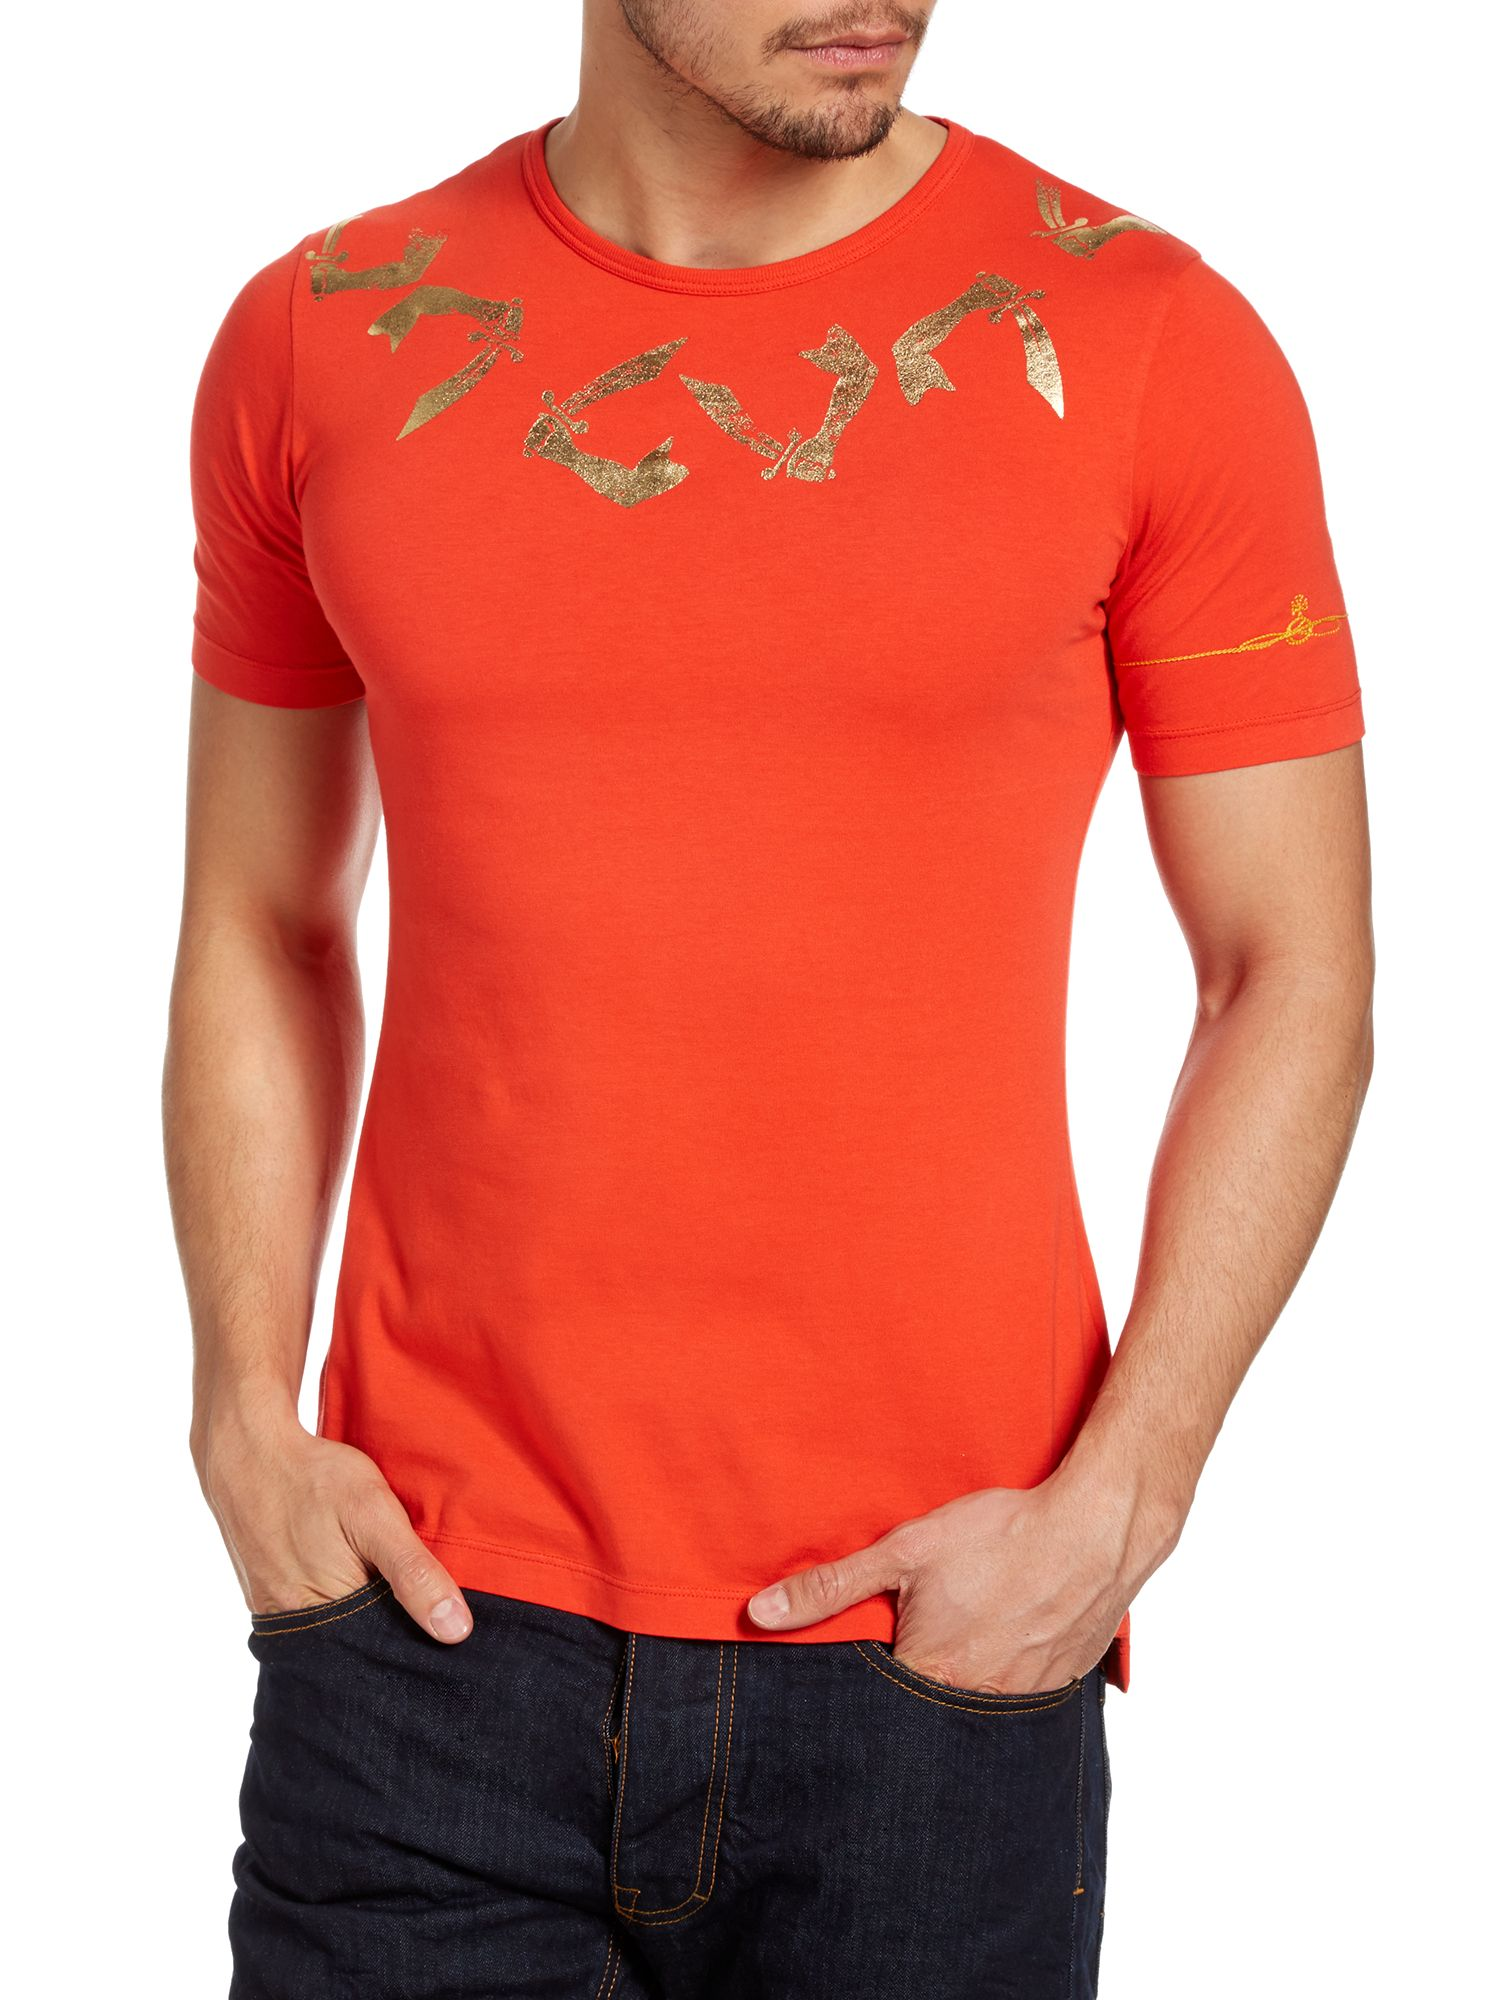 Arm and cutlass print t-shirt